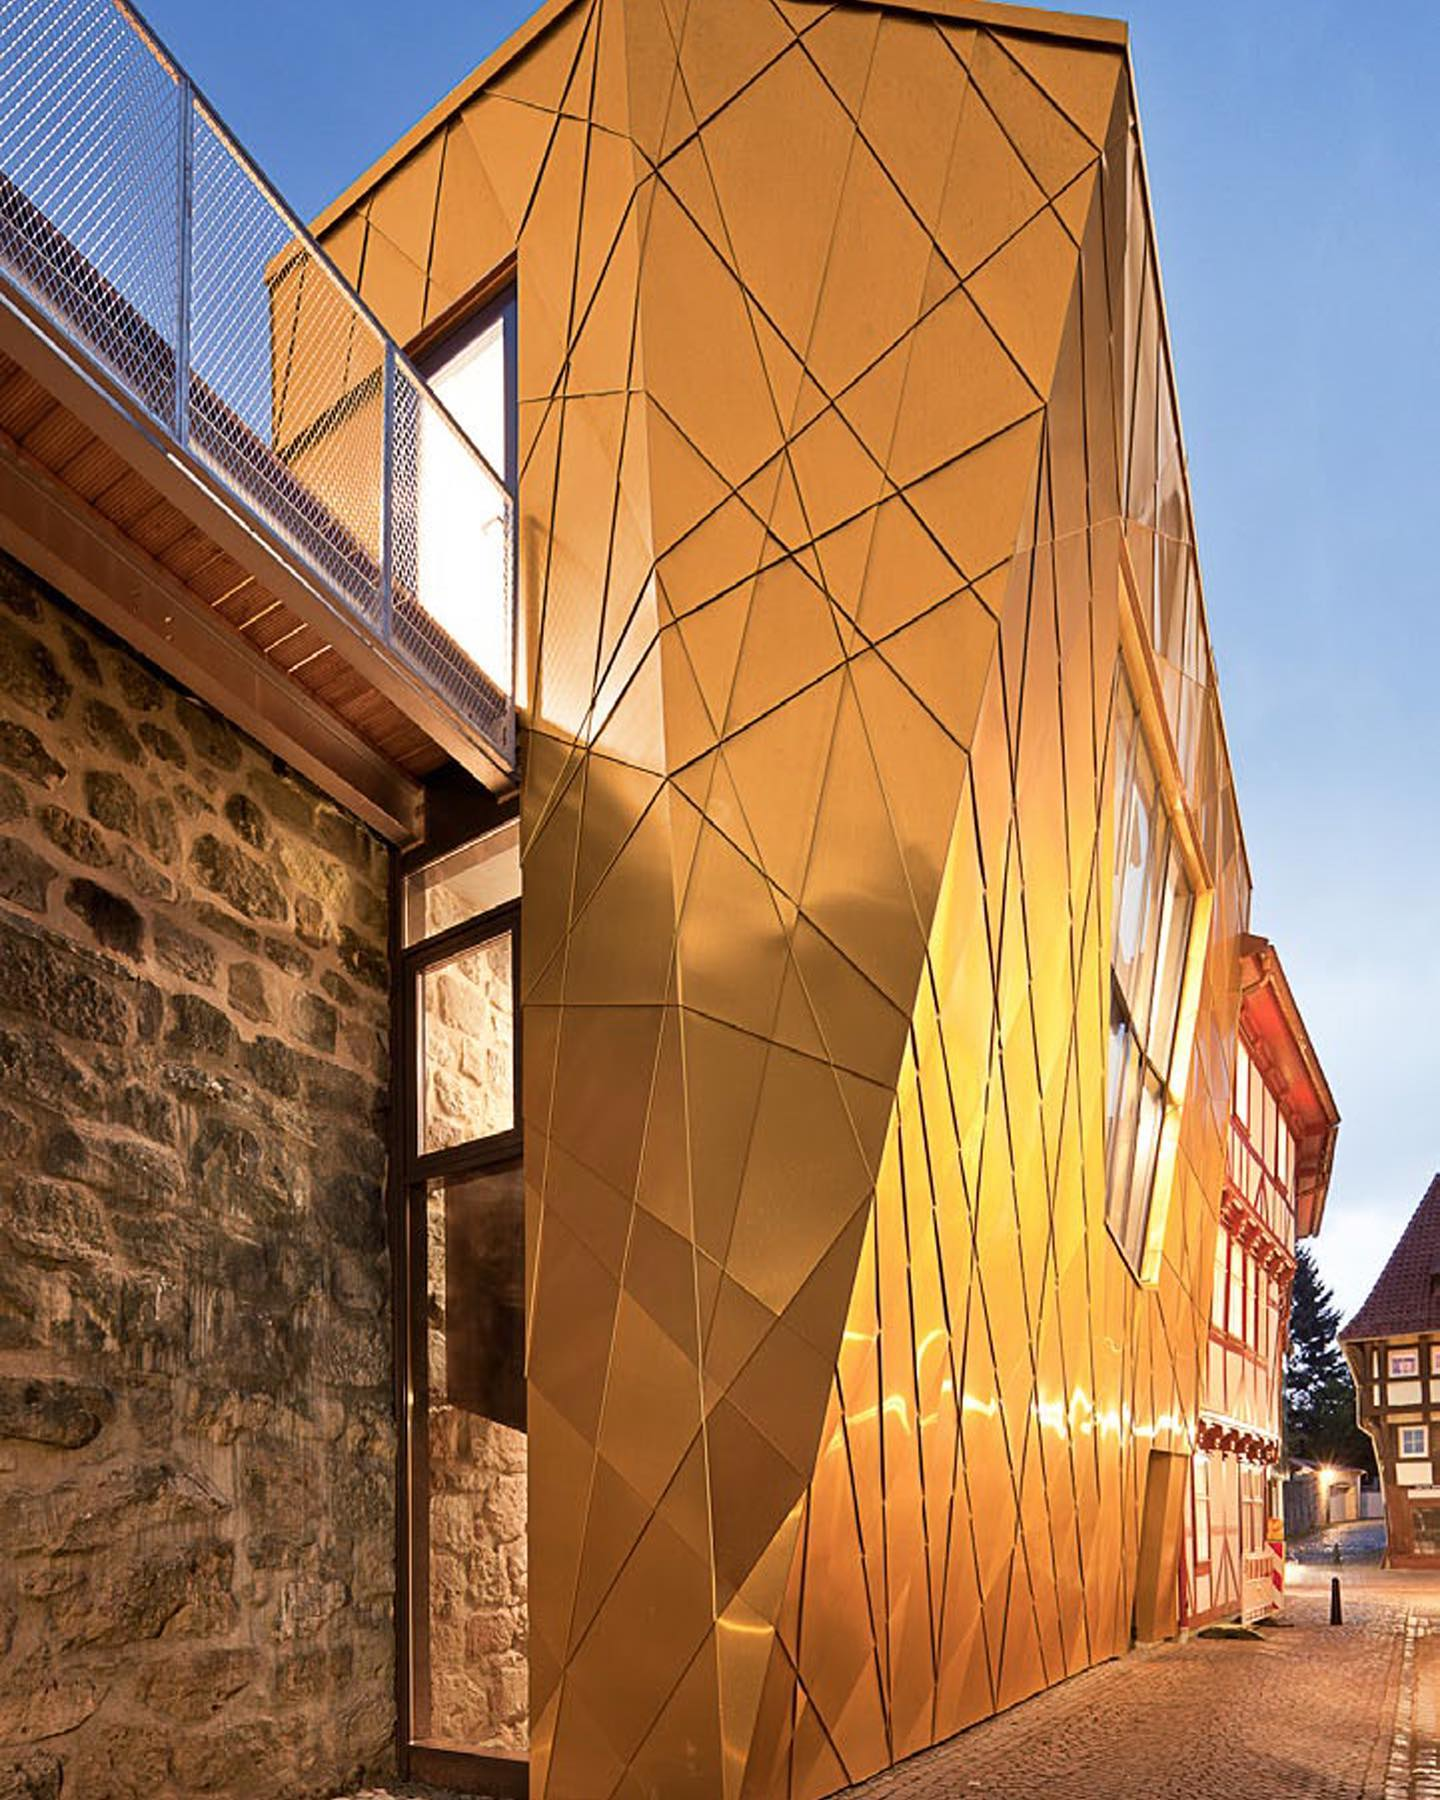 Museum at the town wall Built against the oldest section of the Duderstadt town wall, new exhibition space has been created in a prismatically folded structure. Inclined façade panels with shiny golden copper plate interpret the appeal of the historic building fabric in a modern architectural language. . . #architecturephotography #architecture #archidaily #architektur #archilovers #architecturedaily #architecture_hunter #berlinarchitecture #duderstadt